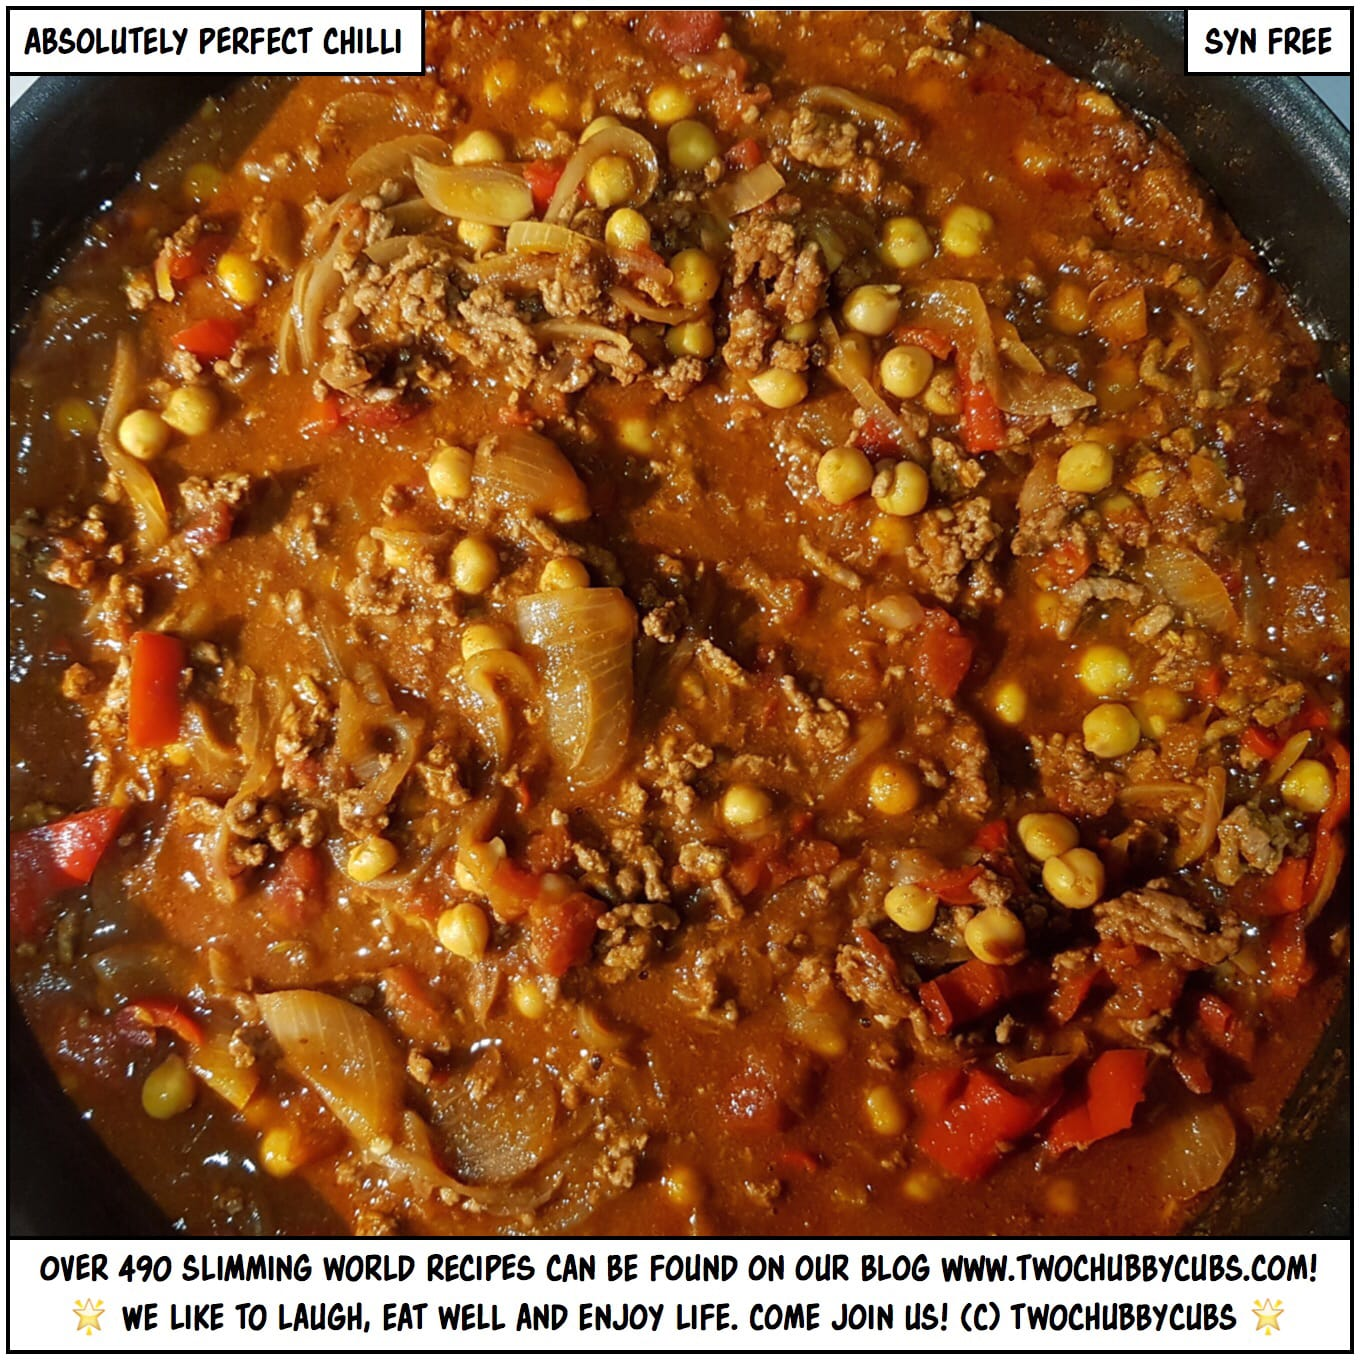 syn free chilli: warm your soul AND your hole - twochubbycubs